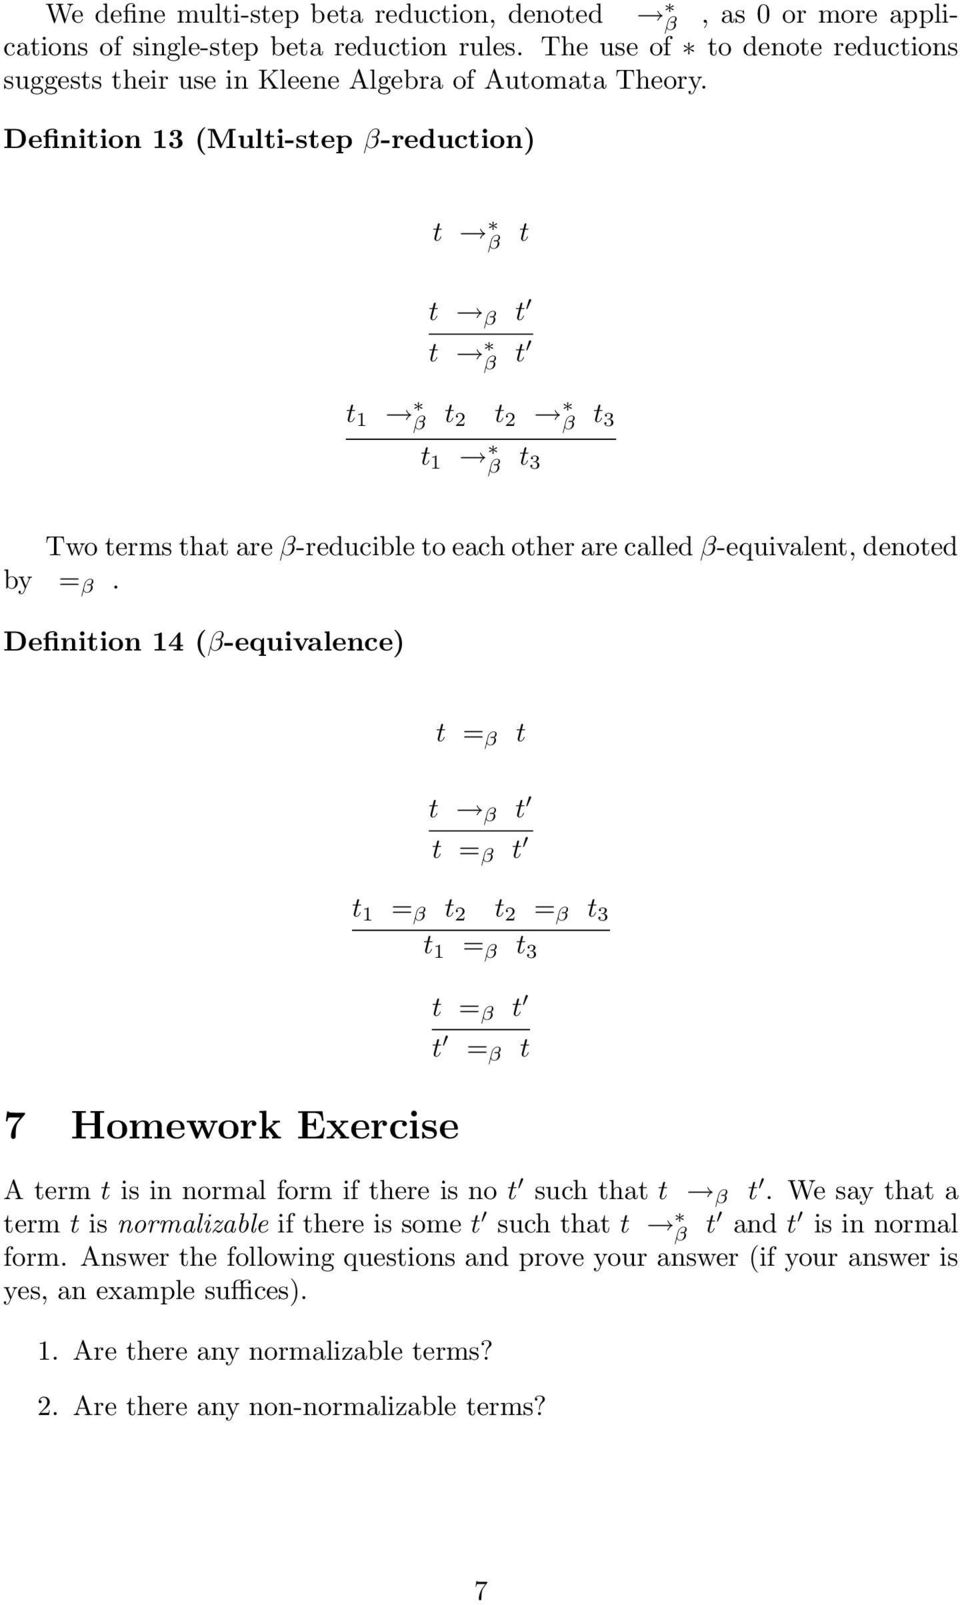 Definition 14 (β-equivalence) t = β t 7 Homework Exercise t β t t = β t t 1 = β t 2 t 2 = β t 3 t 1 = β t 3 t = β t t = β t A term t is in normal form if there is no t such that t β t.